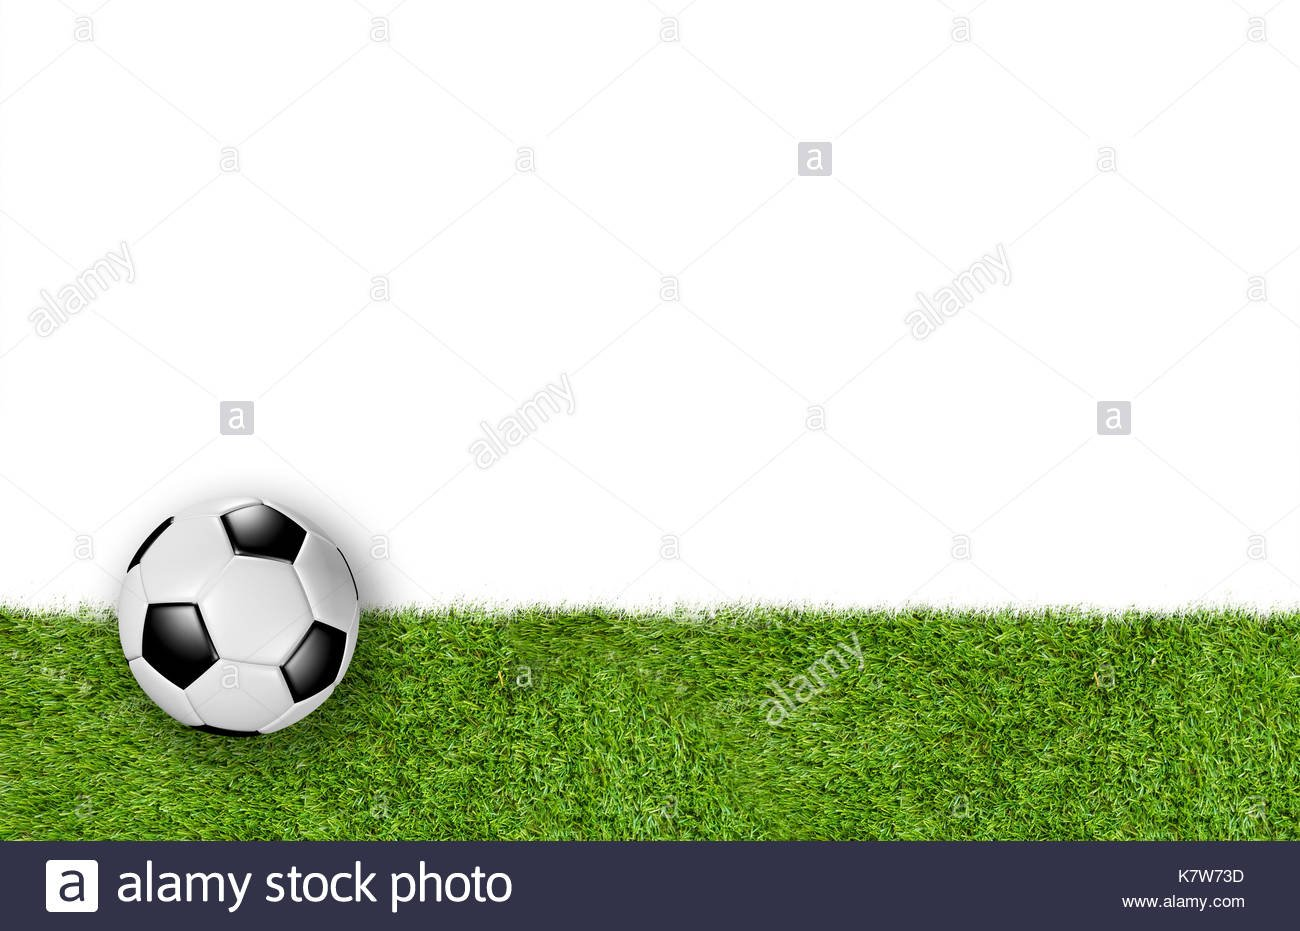 Grass lower third on white background with European football known 1300x931